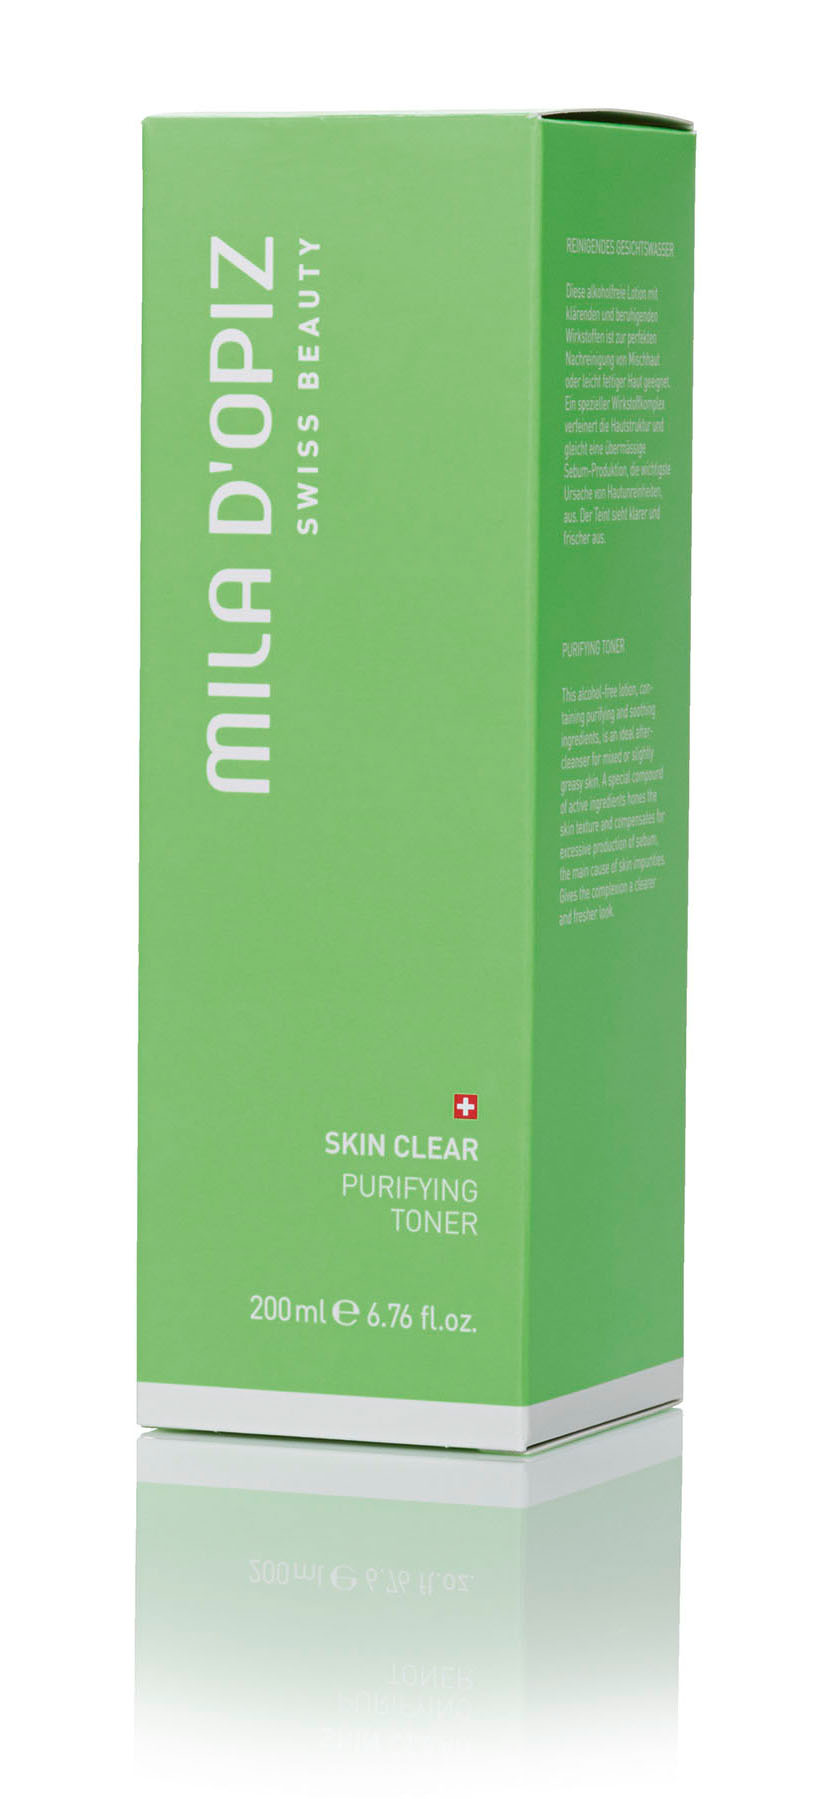 Skin Clear Purifying Toner